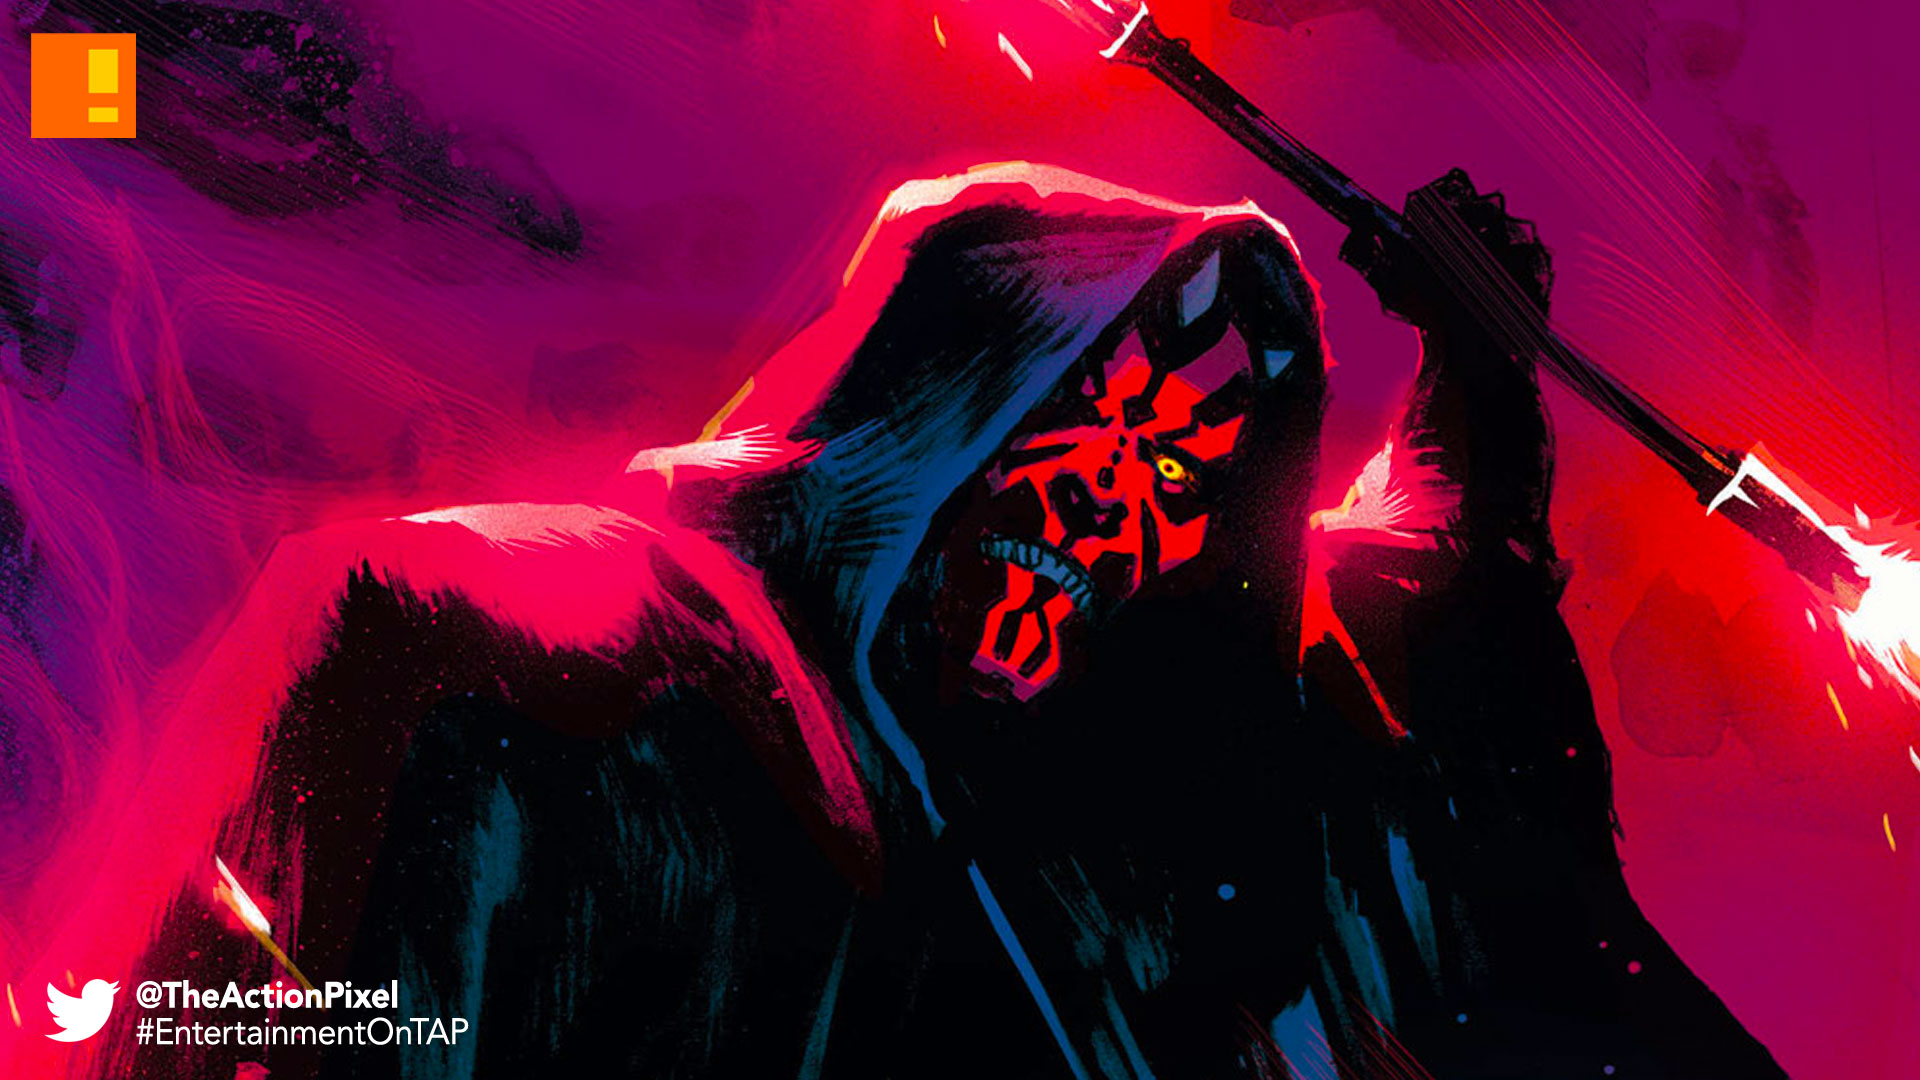 ,darth maul, star wars, lucasfilm, star wars comic, comics, marvel, the action pixel, entertainment on tap, darth sidious, lightsaber, dark side, force, disney, marvel comics, the action pixel, entertainment on tap,